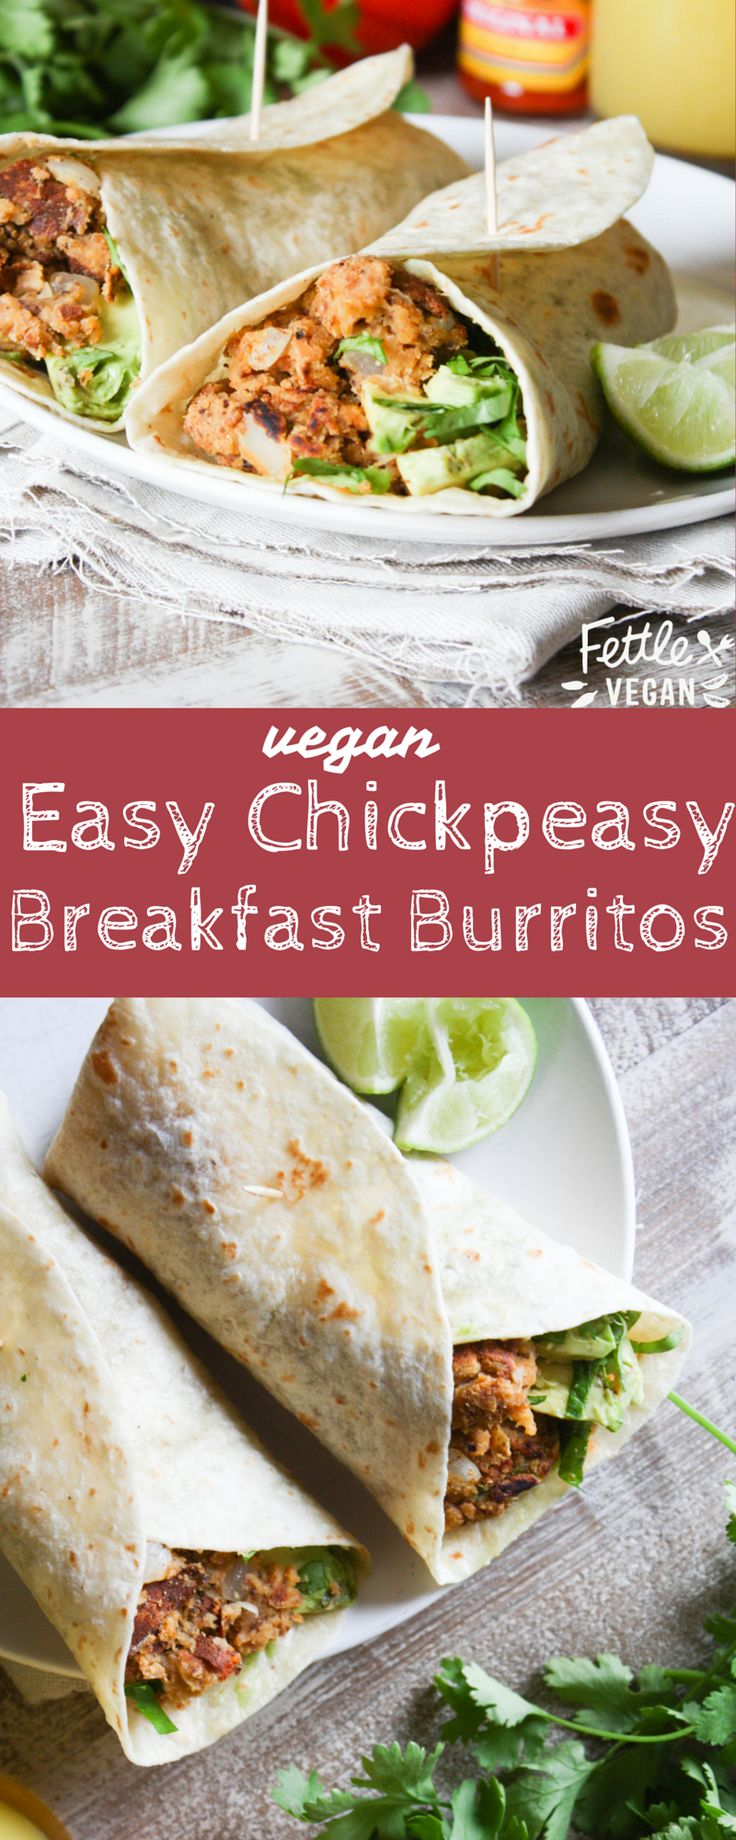 Easy Chickpeasy Breakfast Burritos - packed with #plantbased protein! #vegan